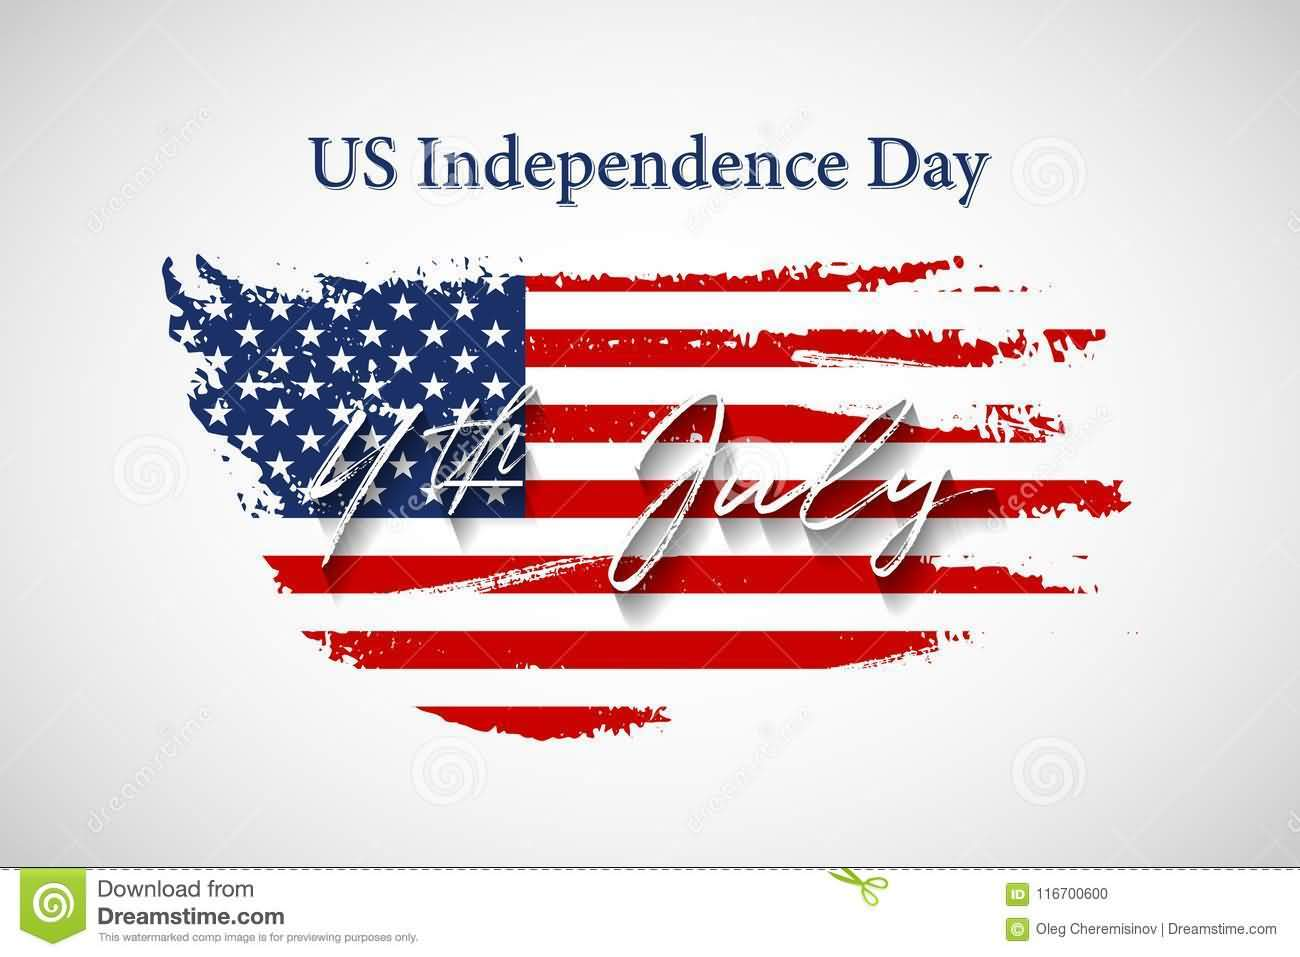 US Independence Day Wishes And Images